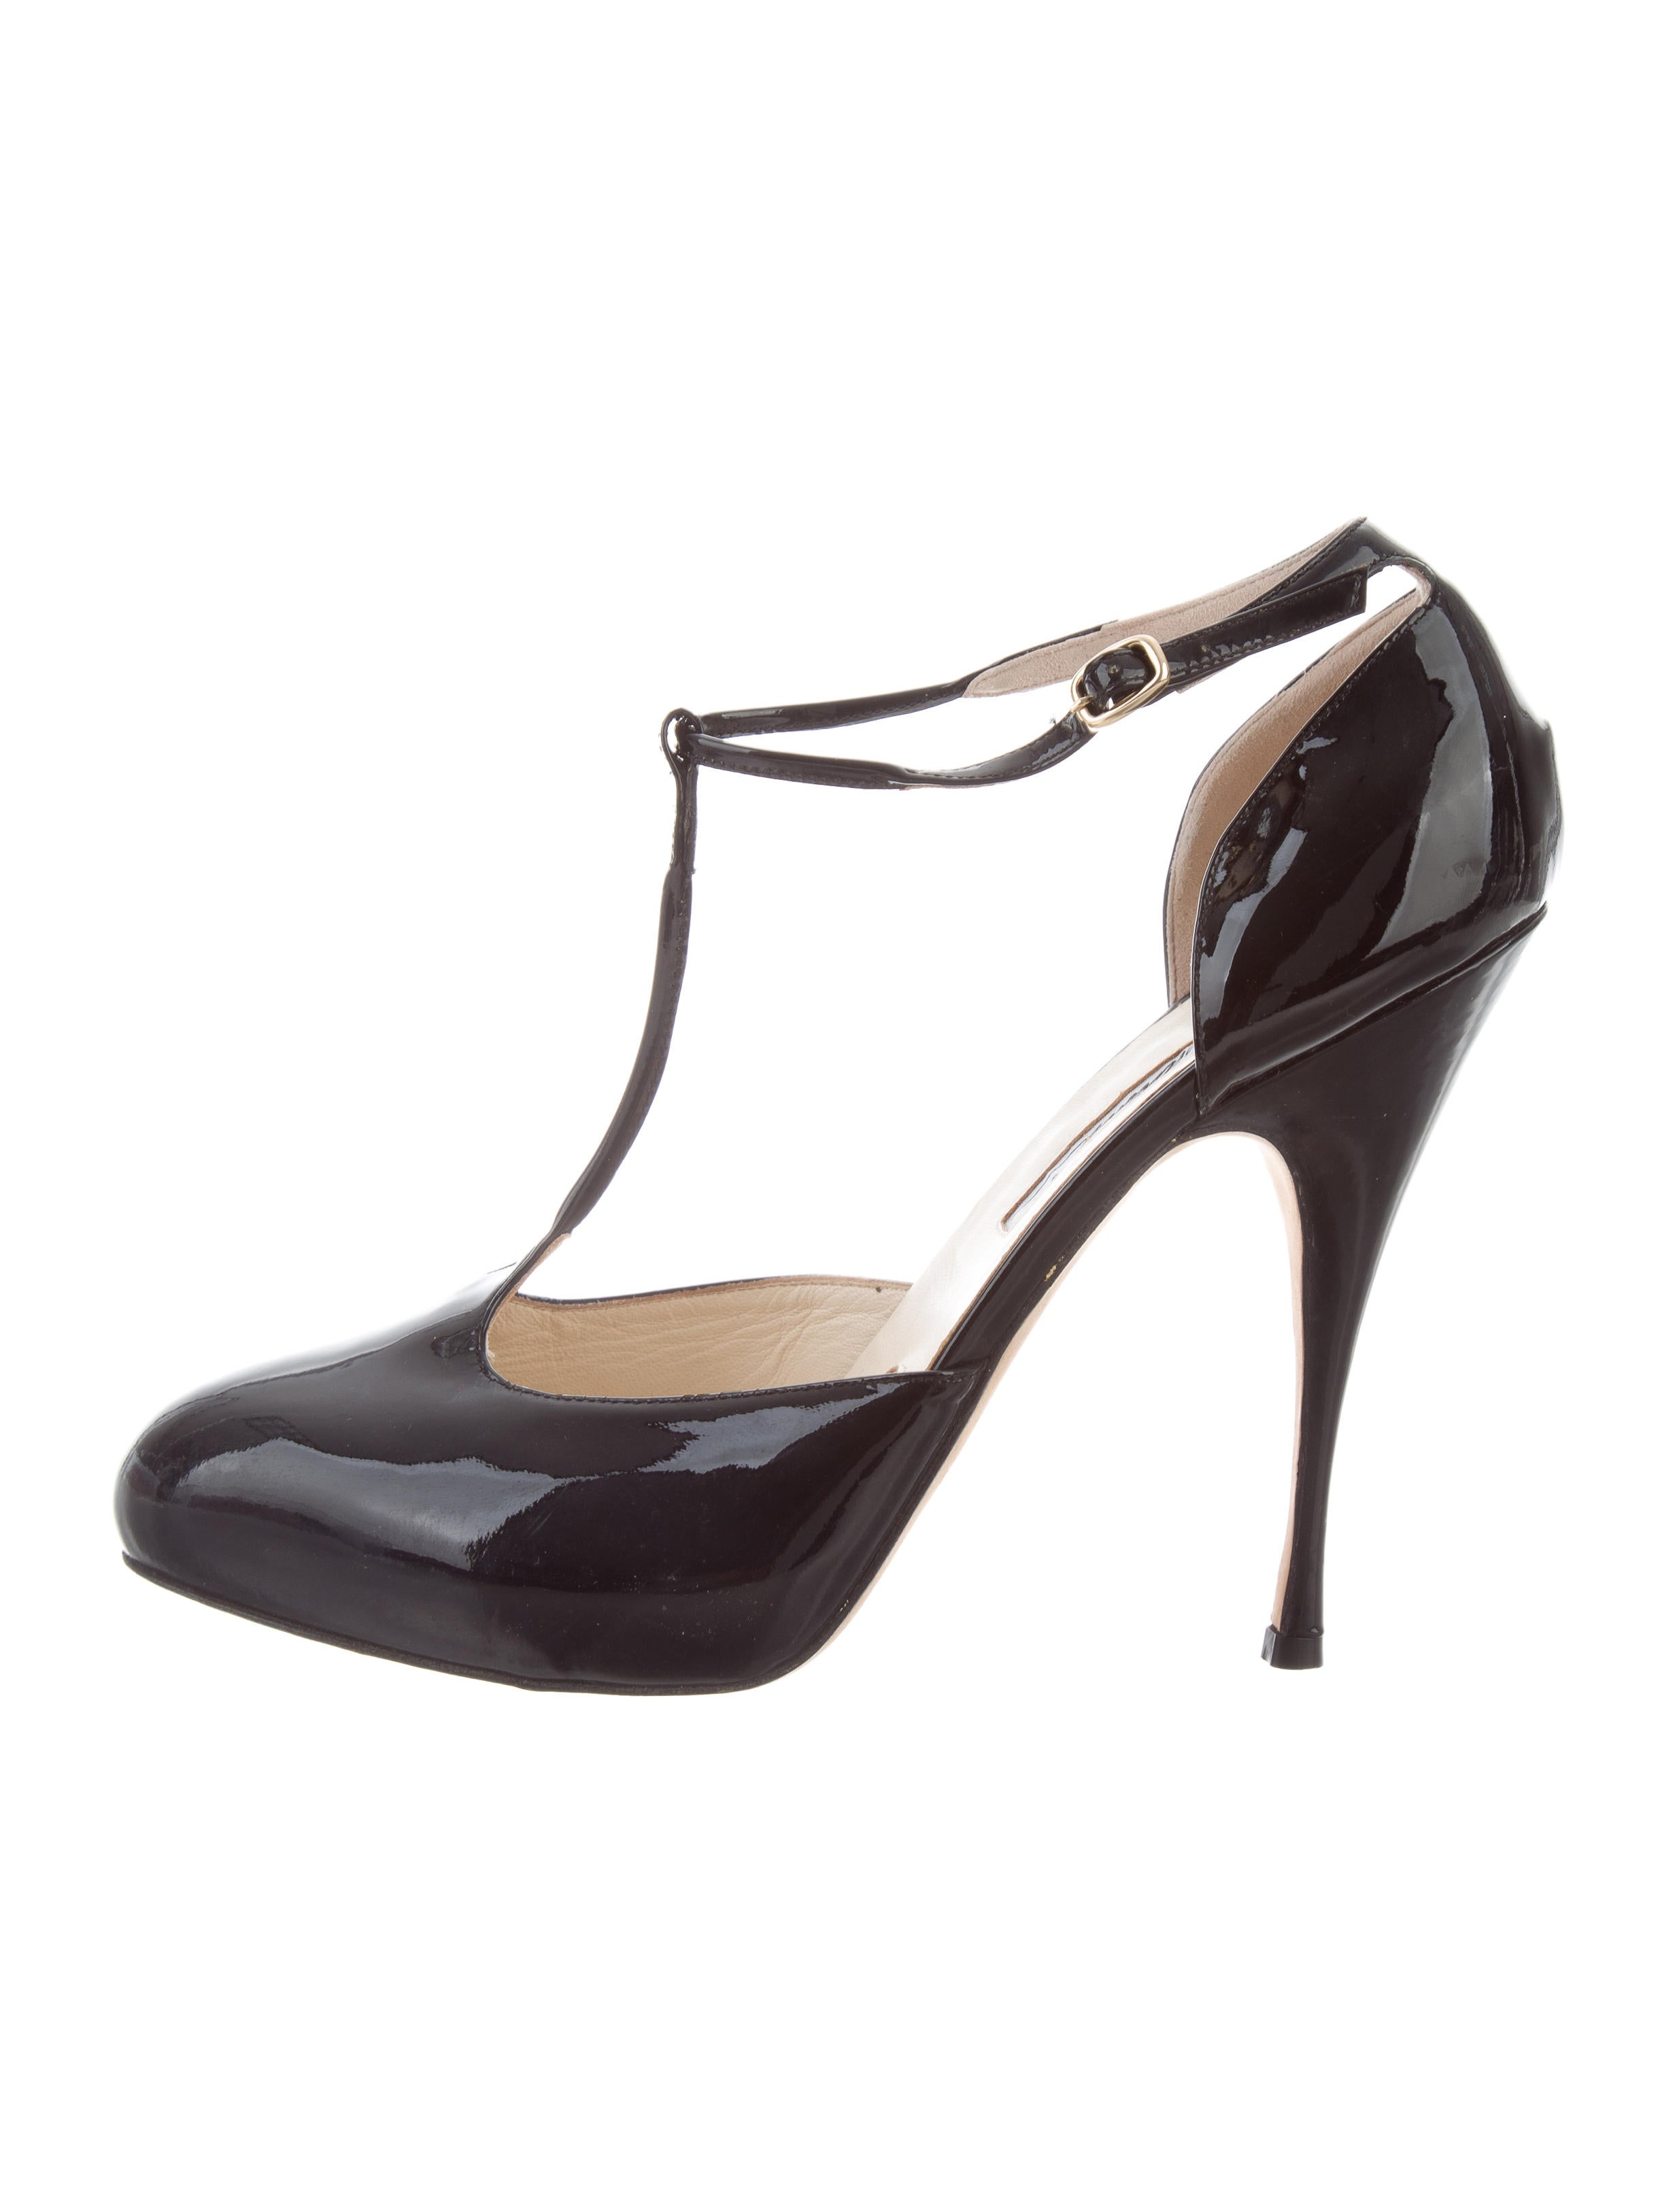 free shipping 100% authentic Brian Atwood Patent Leather T-Strap Pumps clearance pictures sale view VfI989IQ